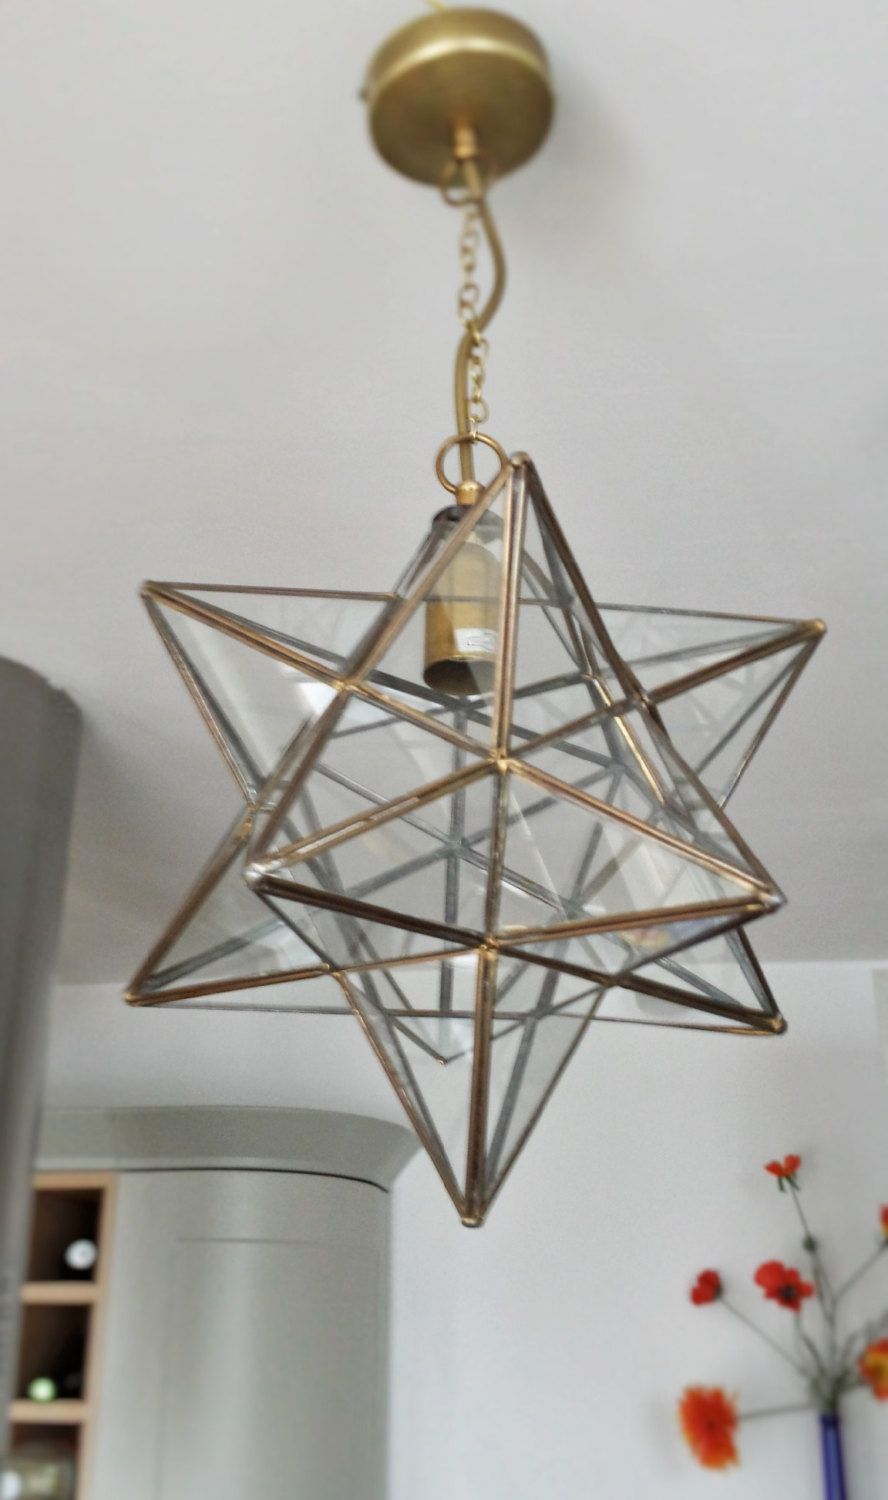 Glass Pendant Light Fixture Antique Brass Star Lantern Renovated Moravian Star Light Hanging Gl Glass Star Light Star Pendant Lighting Pendant Light Fitting